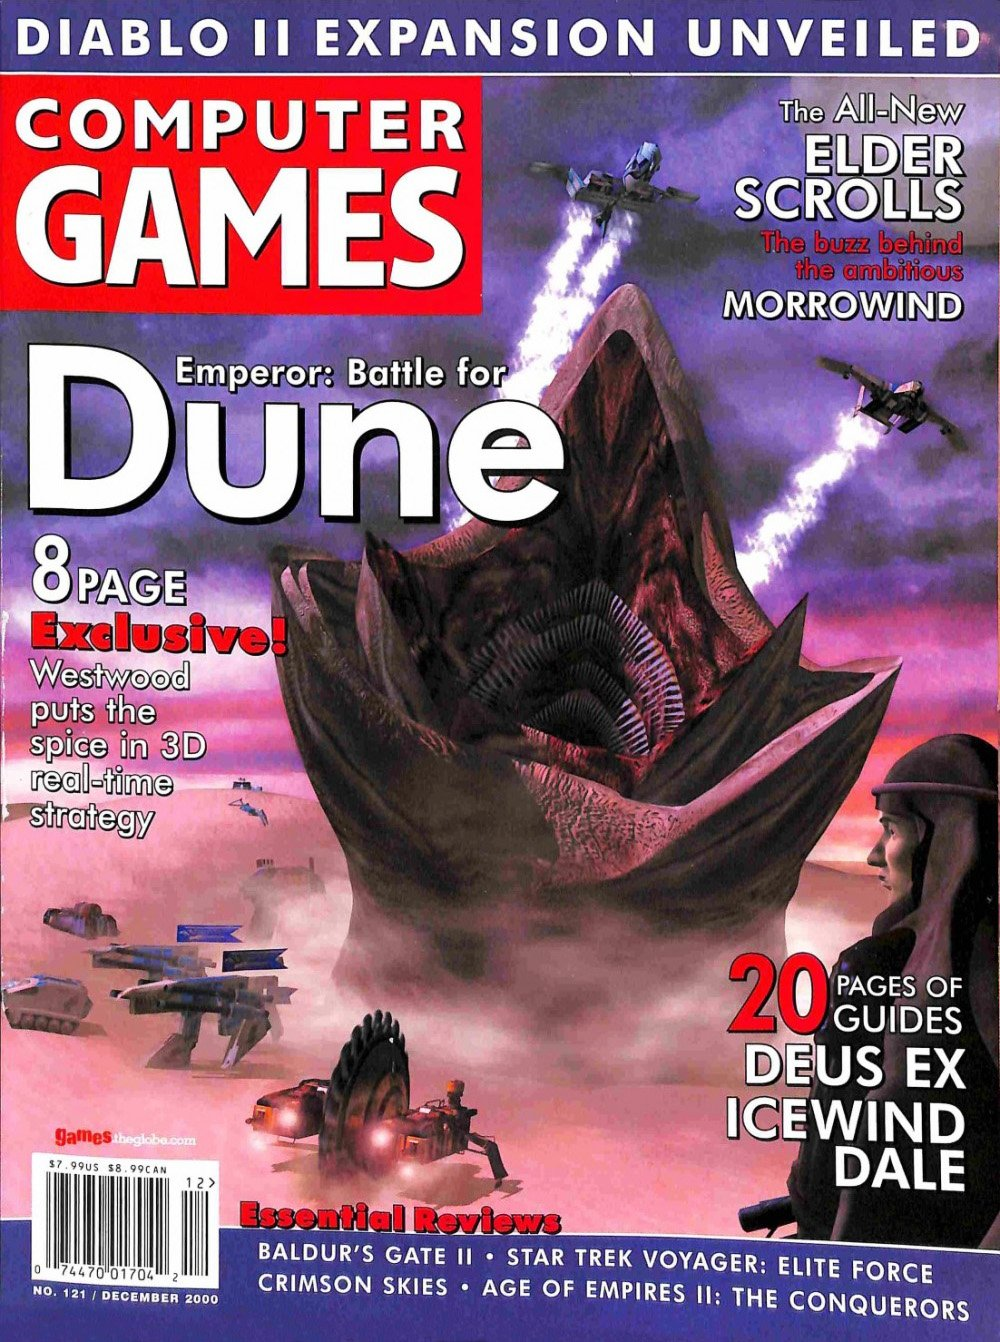 Computer Games Issue 121 (December 2000) *alternate cover*